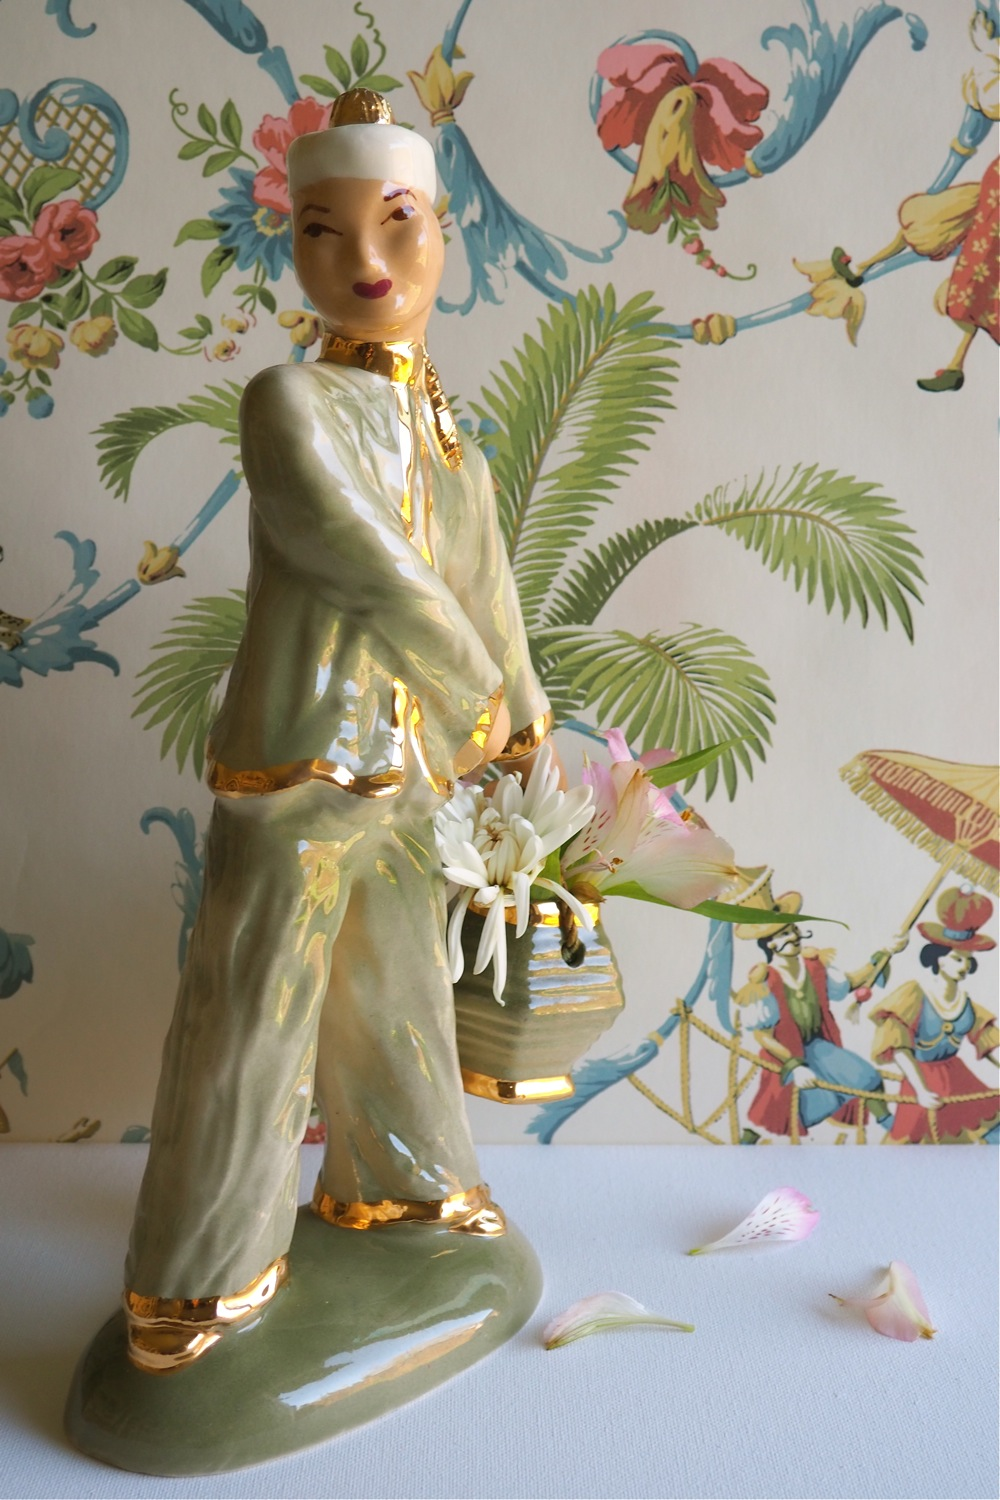 flatten the curve, flatten the coronavirus curve, flatten the COVID-19 curve, flatten the coronavirus COVID-19 pandemic curve, Vintage Finds Hedi Schoop Art Creations, Hedi Schoop ceramics designer, vintage 13 inch tall asian male figurine, vintage chinoiserie figurine, vintage male ceramic asian figurine, Hedi Schoop Hollywood California